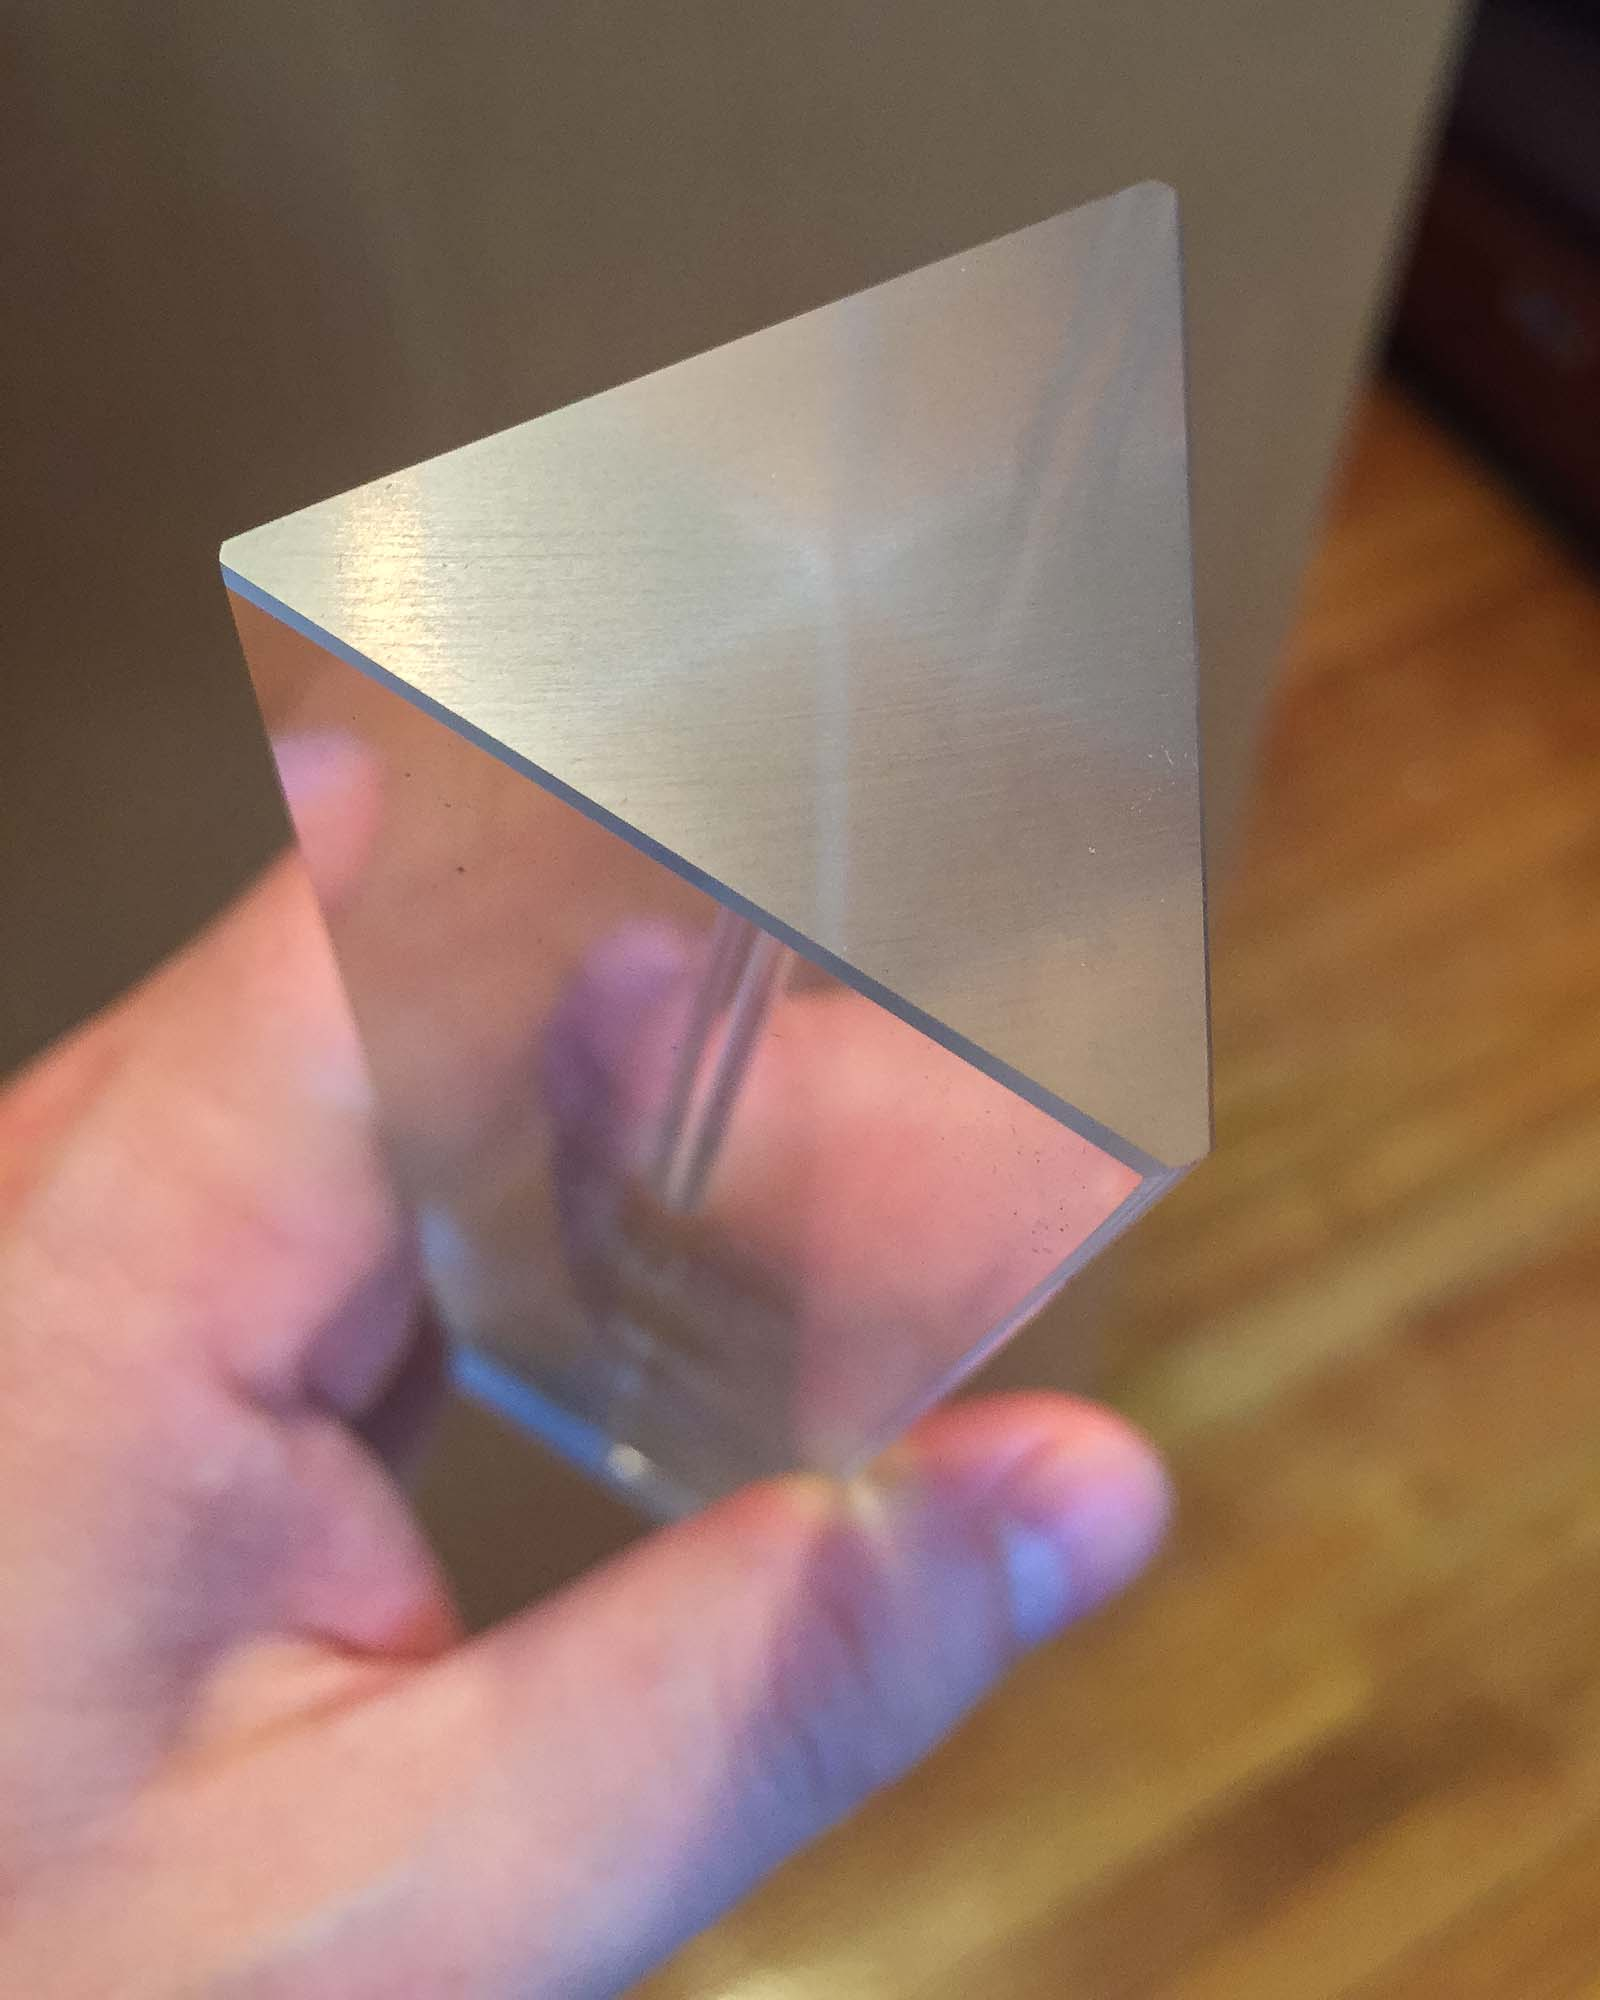 Large glass prism